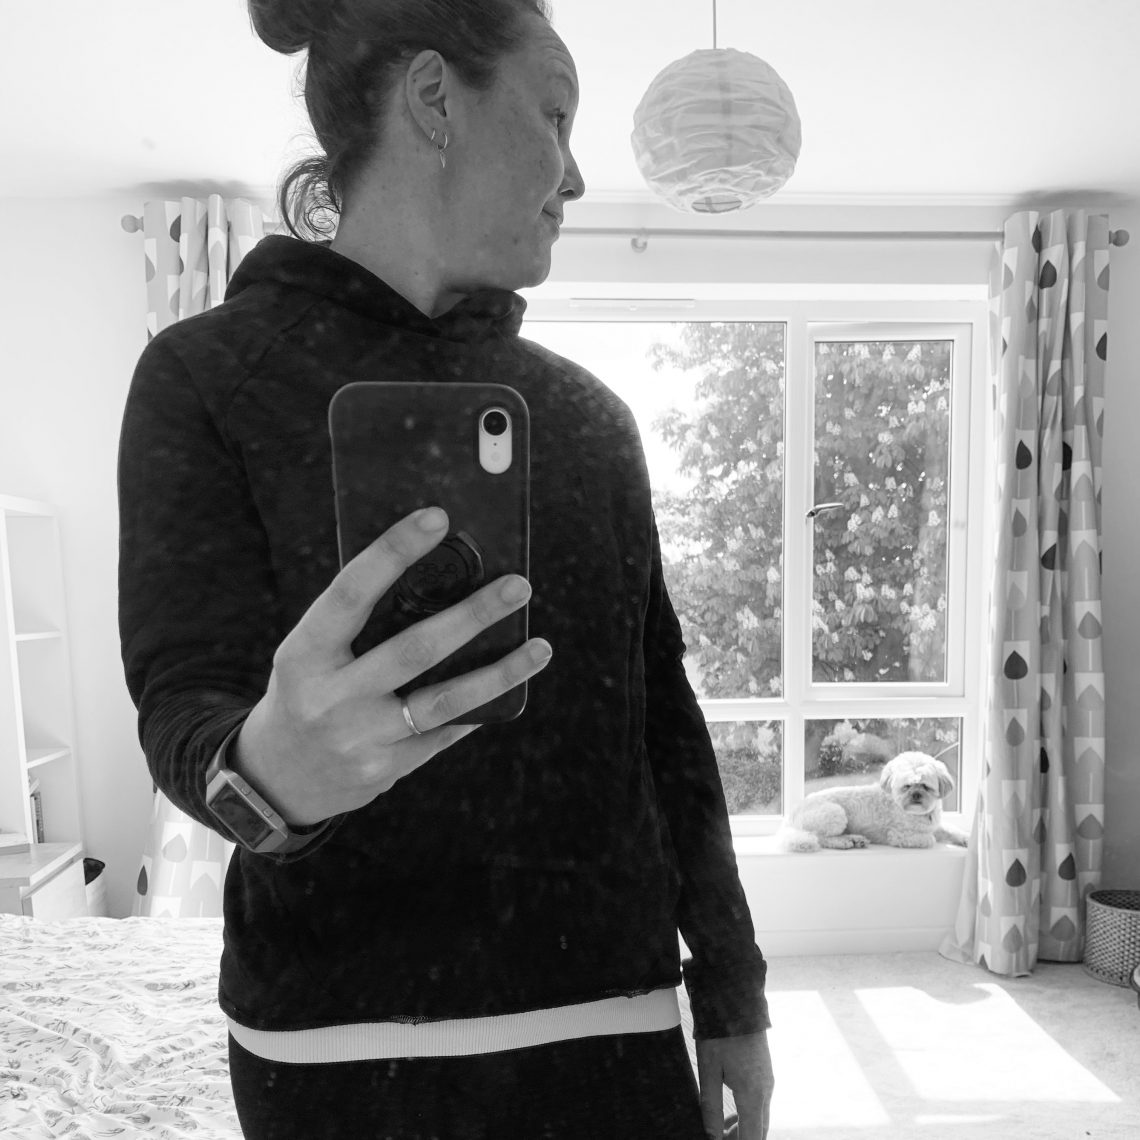 Rosie wearing a black hoody and gym clothes